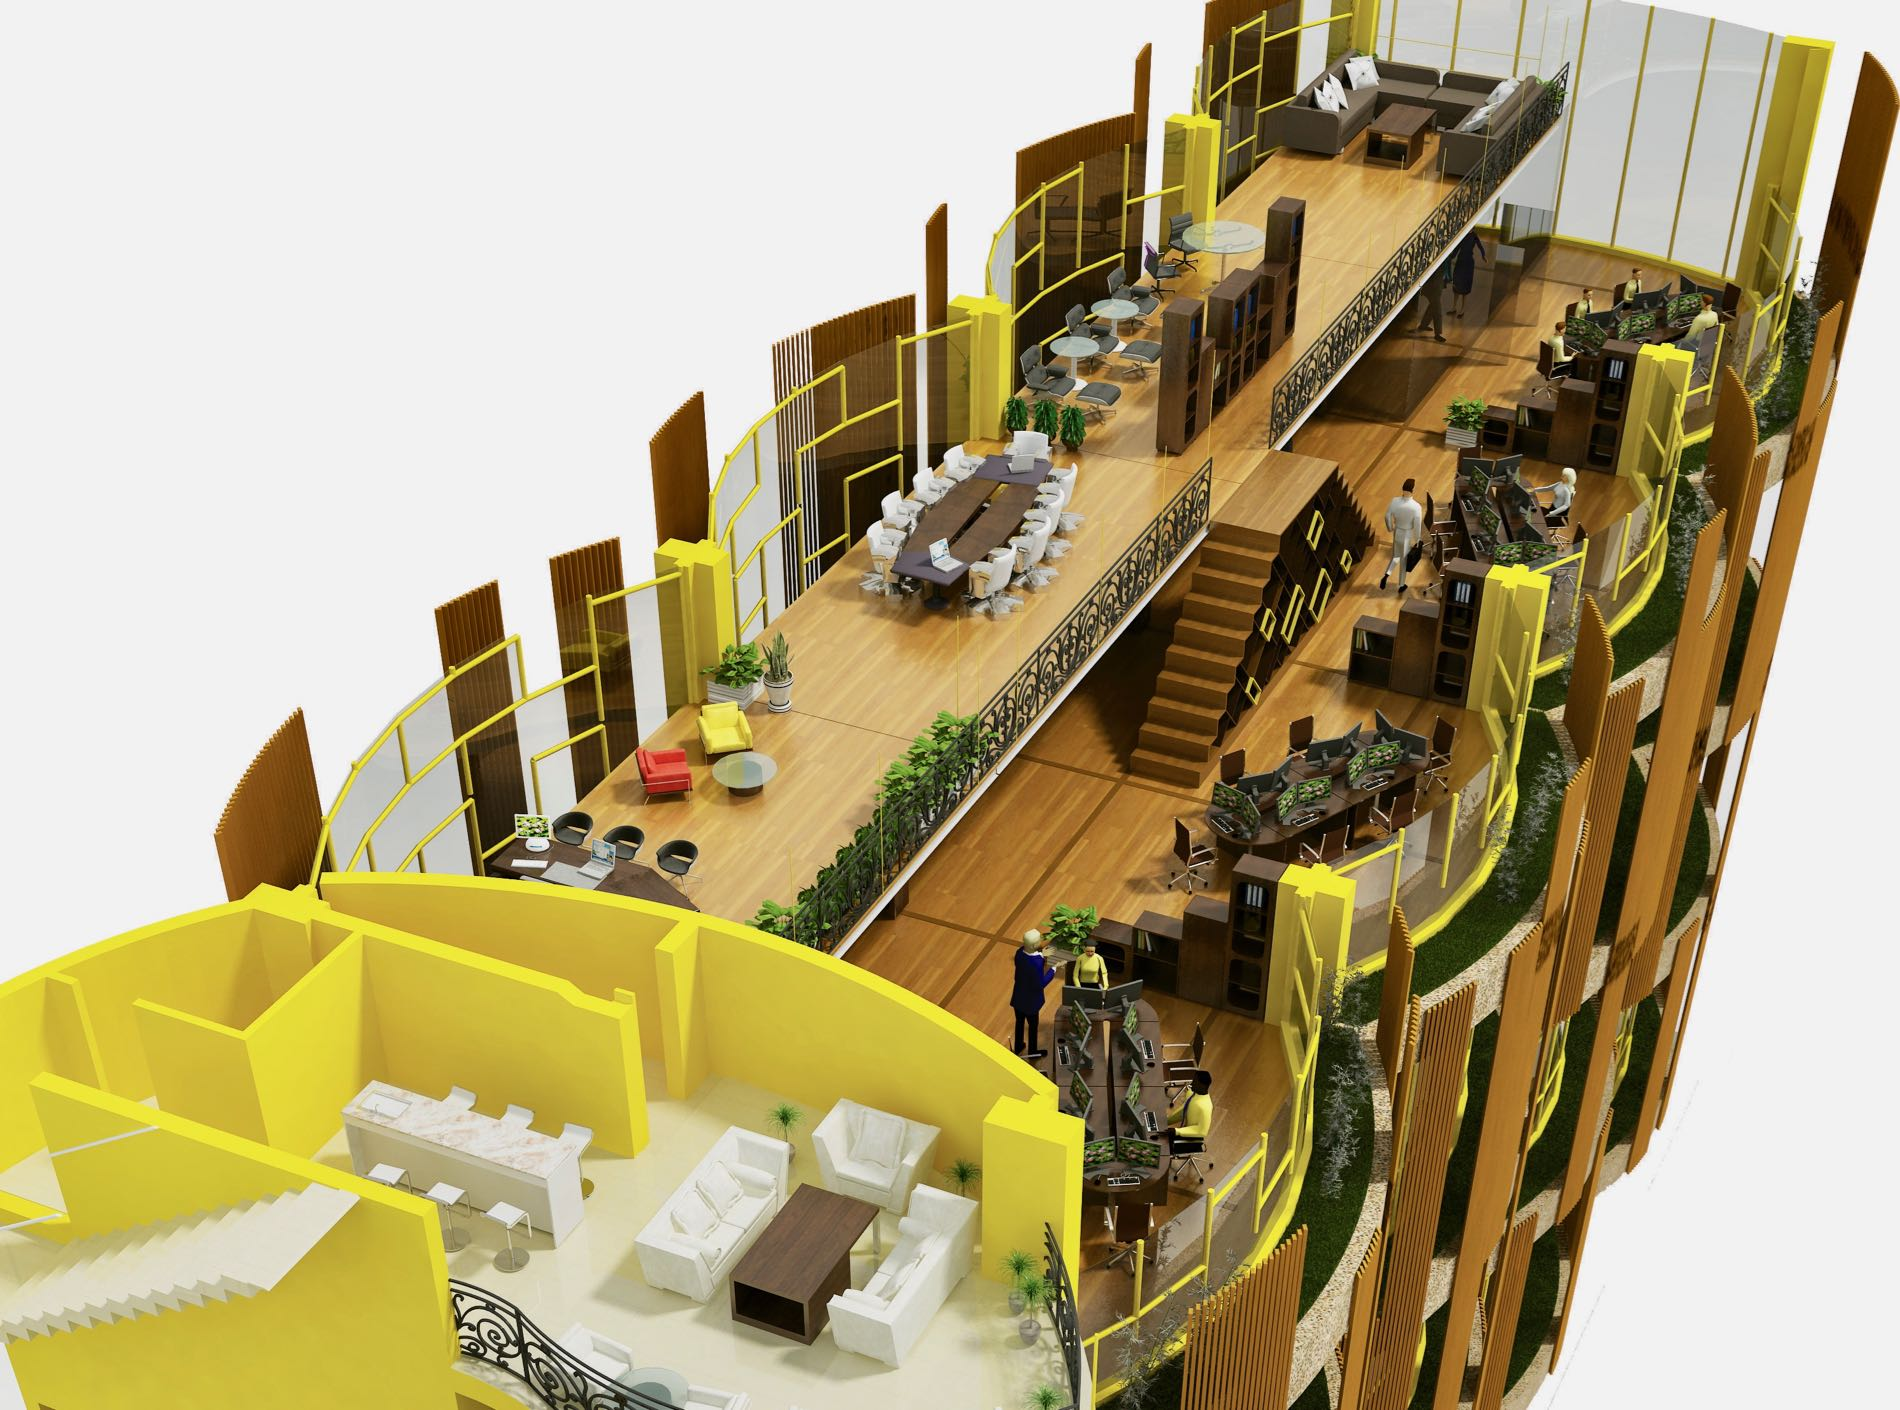 3d-render-yellow-tower-office-floor-rent-lease.jpg